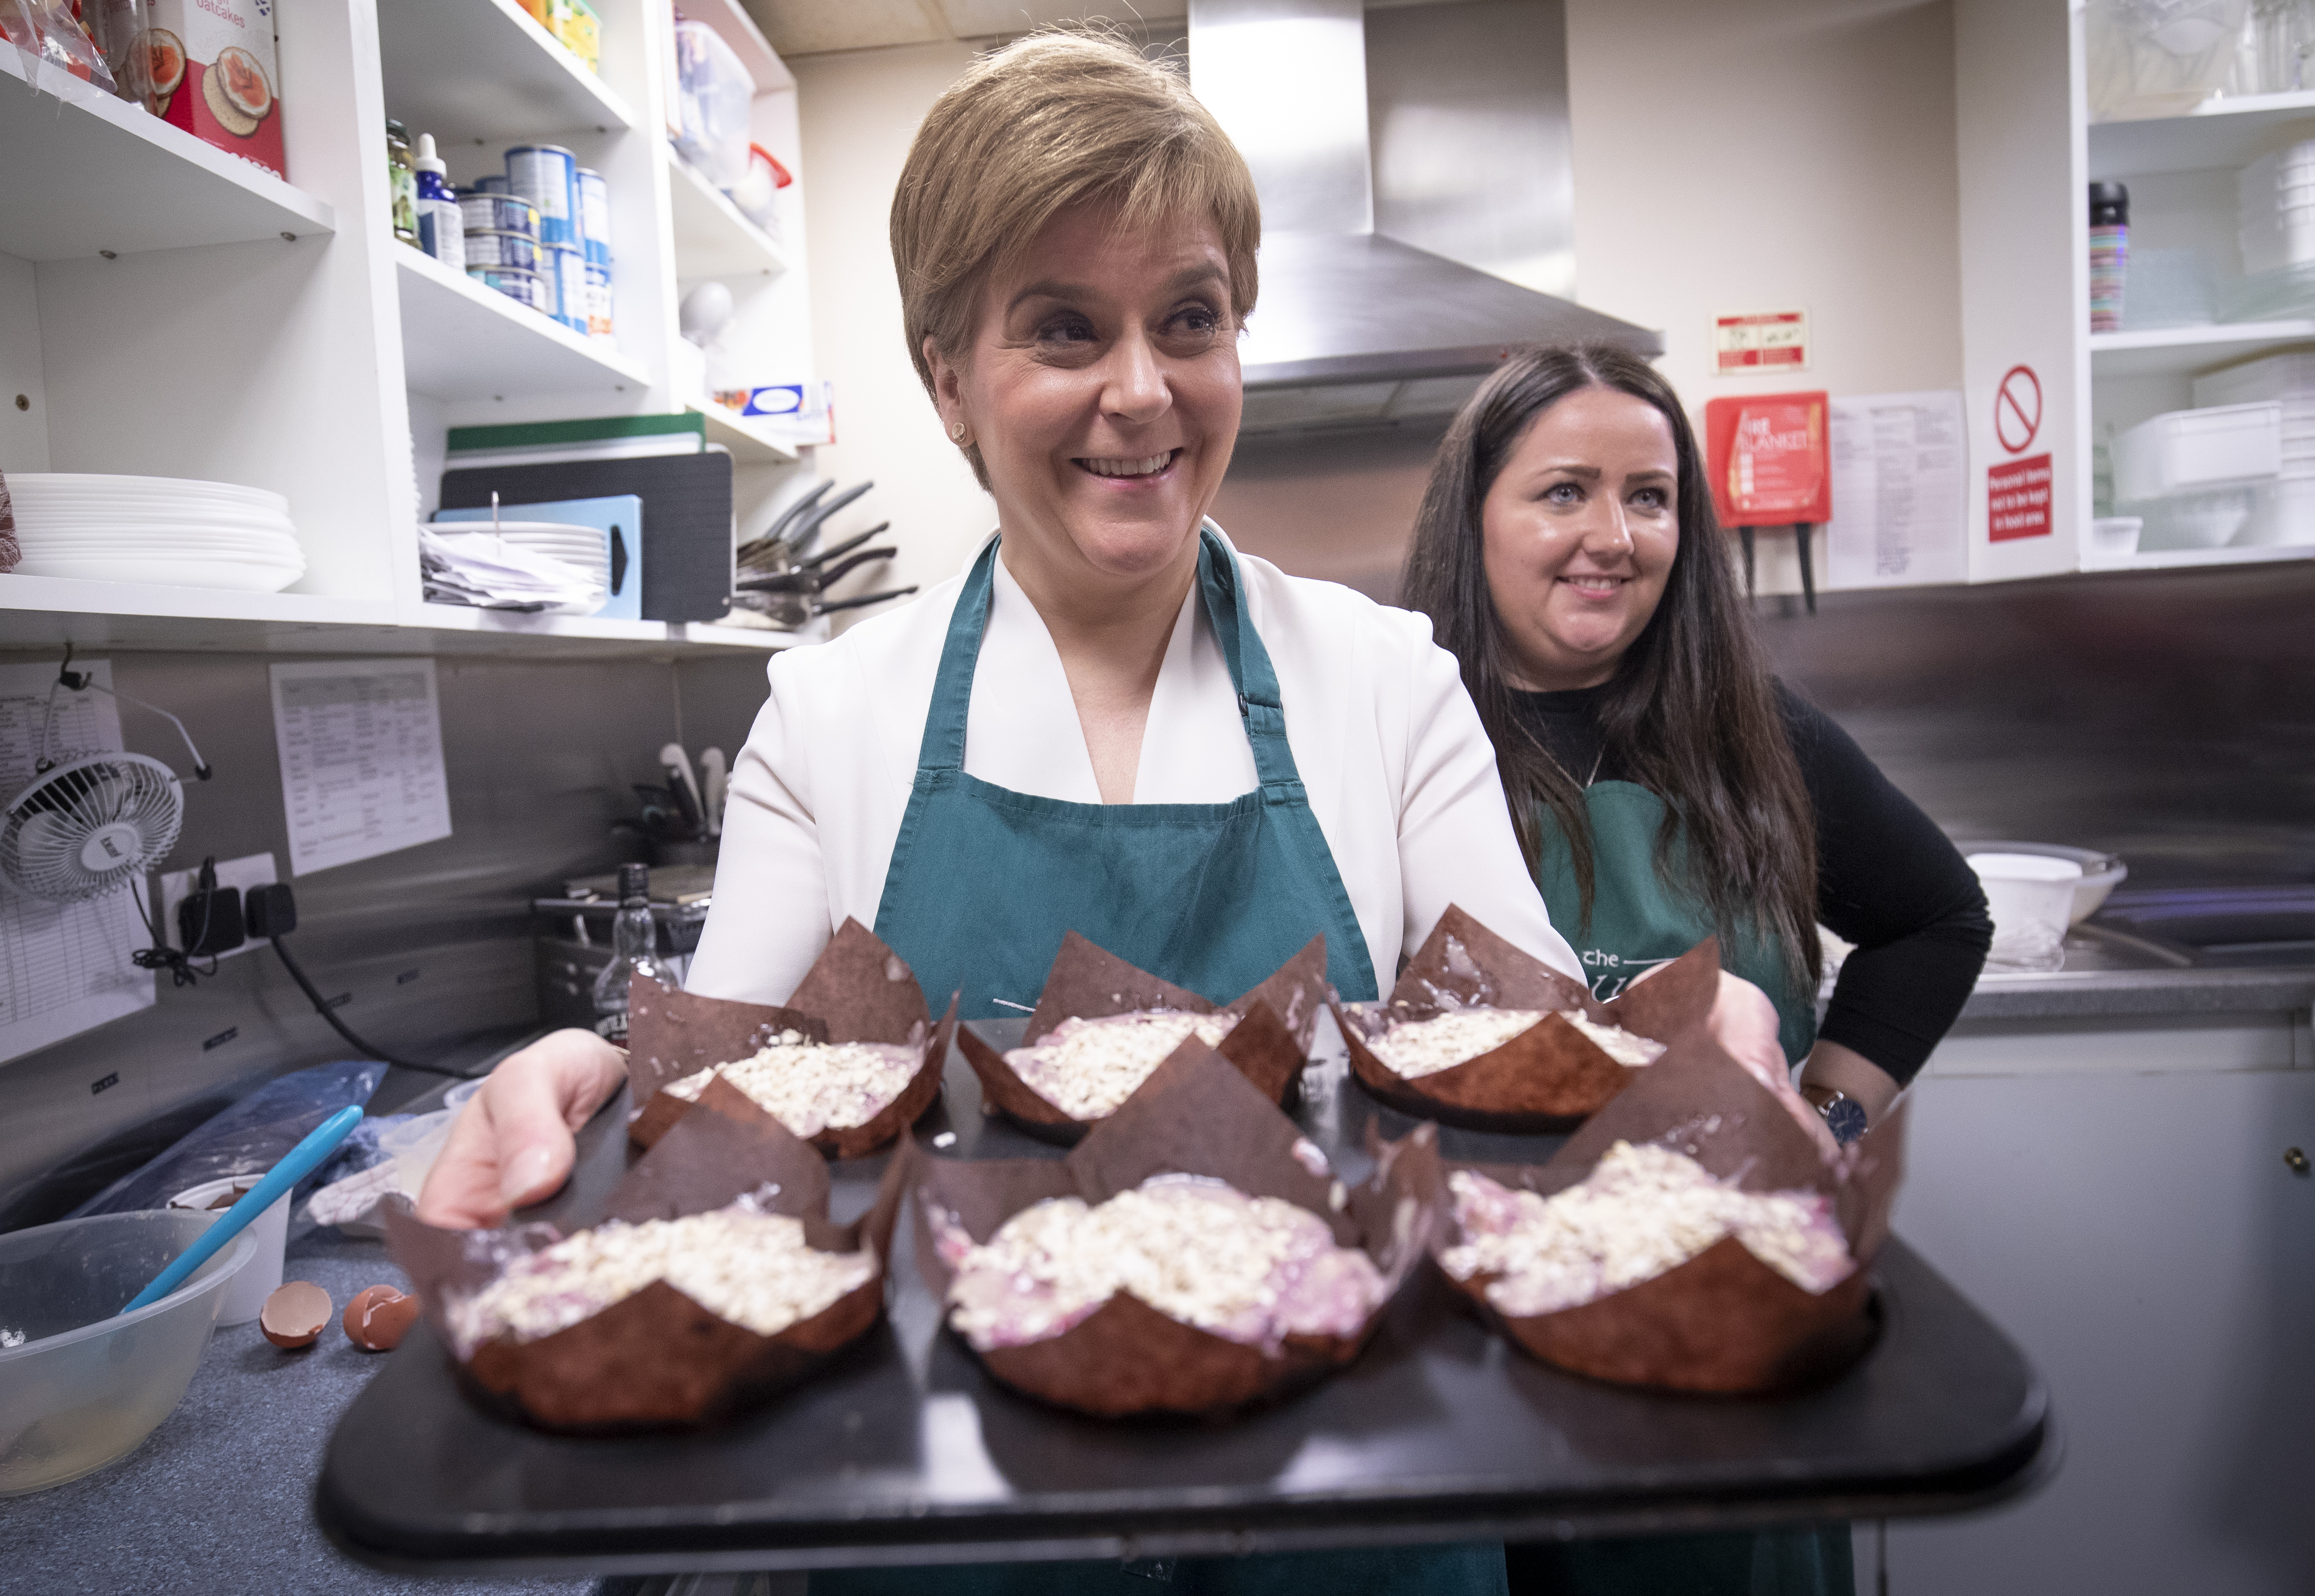 SNP leader Nicola Sturgeon with Angela Crawley (right), SNP Candidate for Lanark and Hamilton East, helps to make muffins during a visit the Wallace tea Rooms in Lanark on the General Election campaign trail.